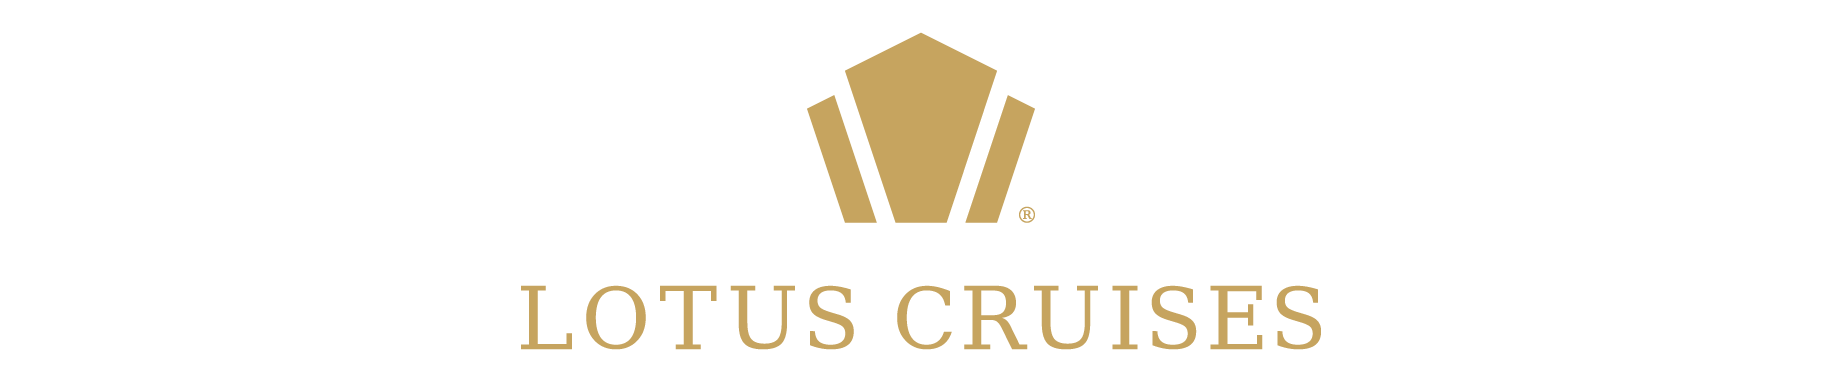 Lotus-Cruises-small_transp_wide.png